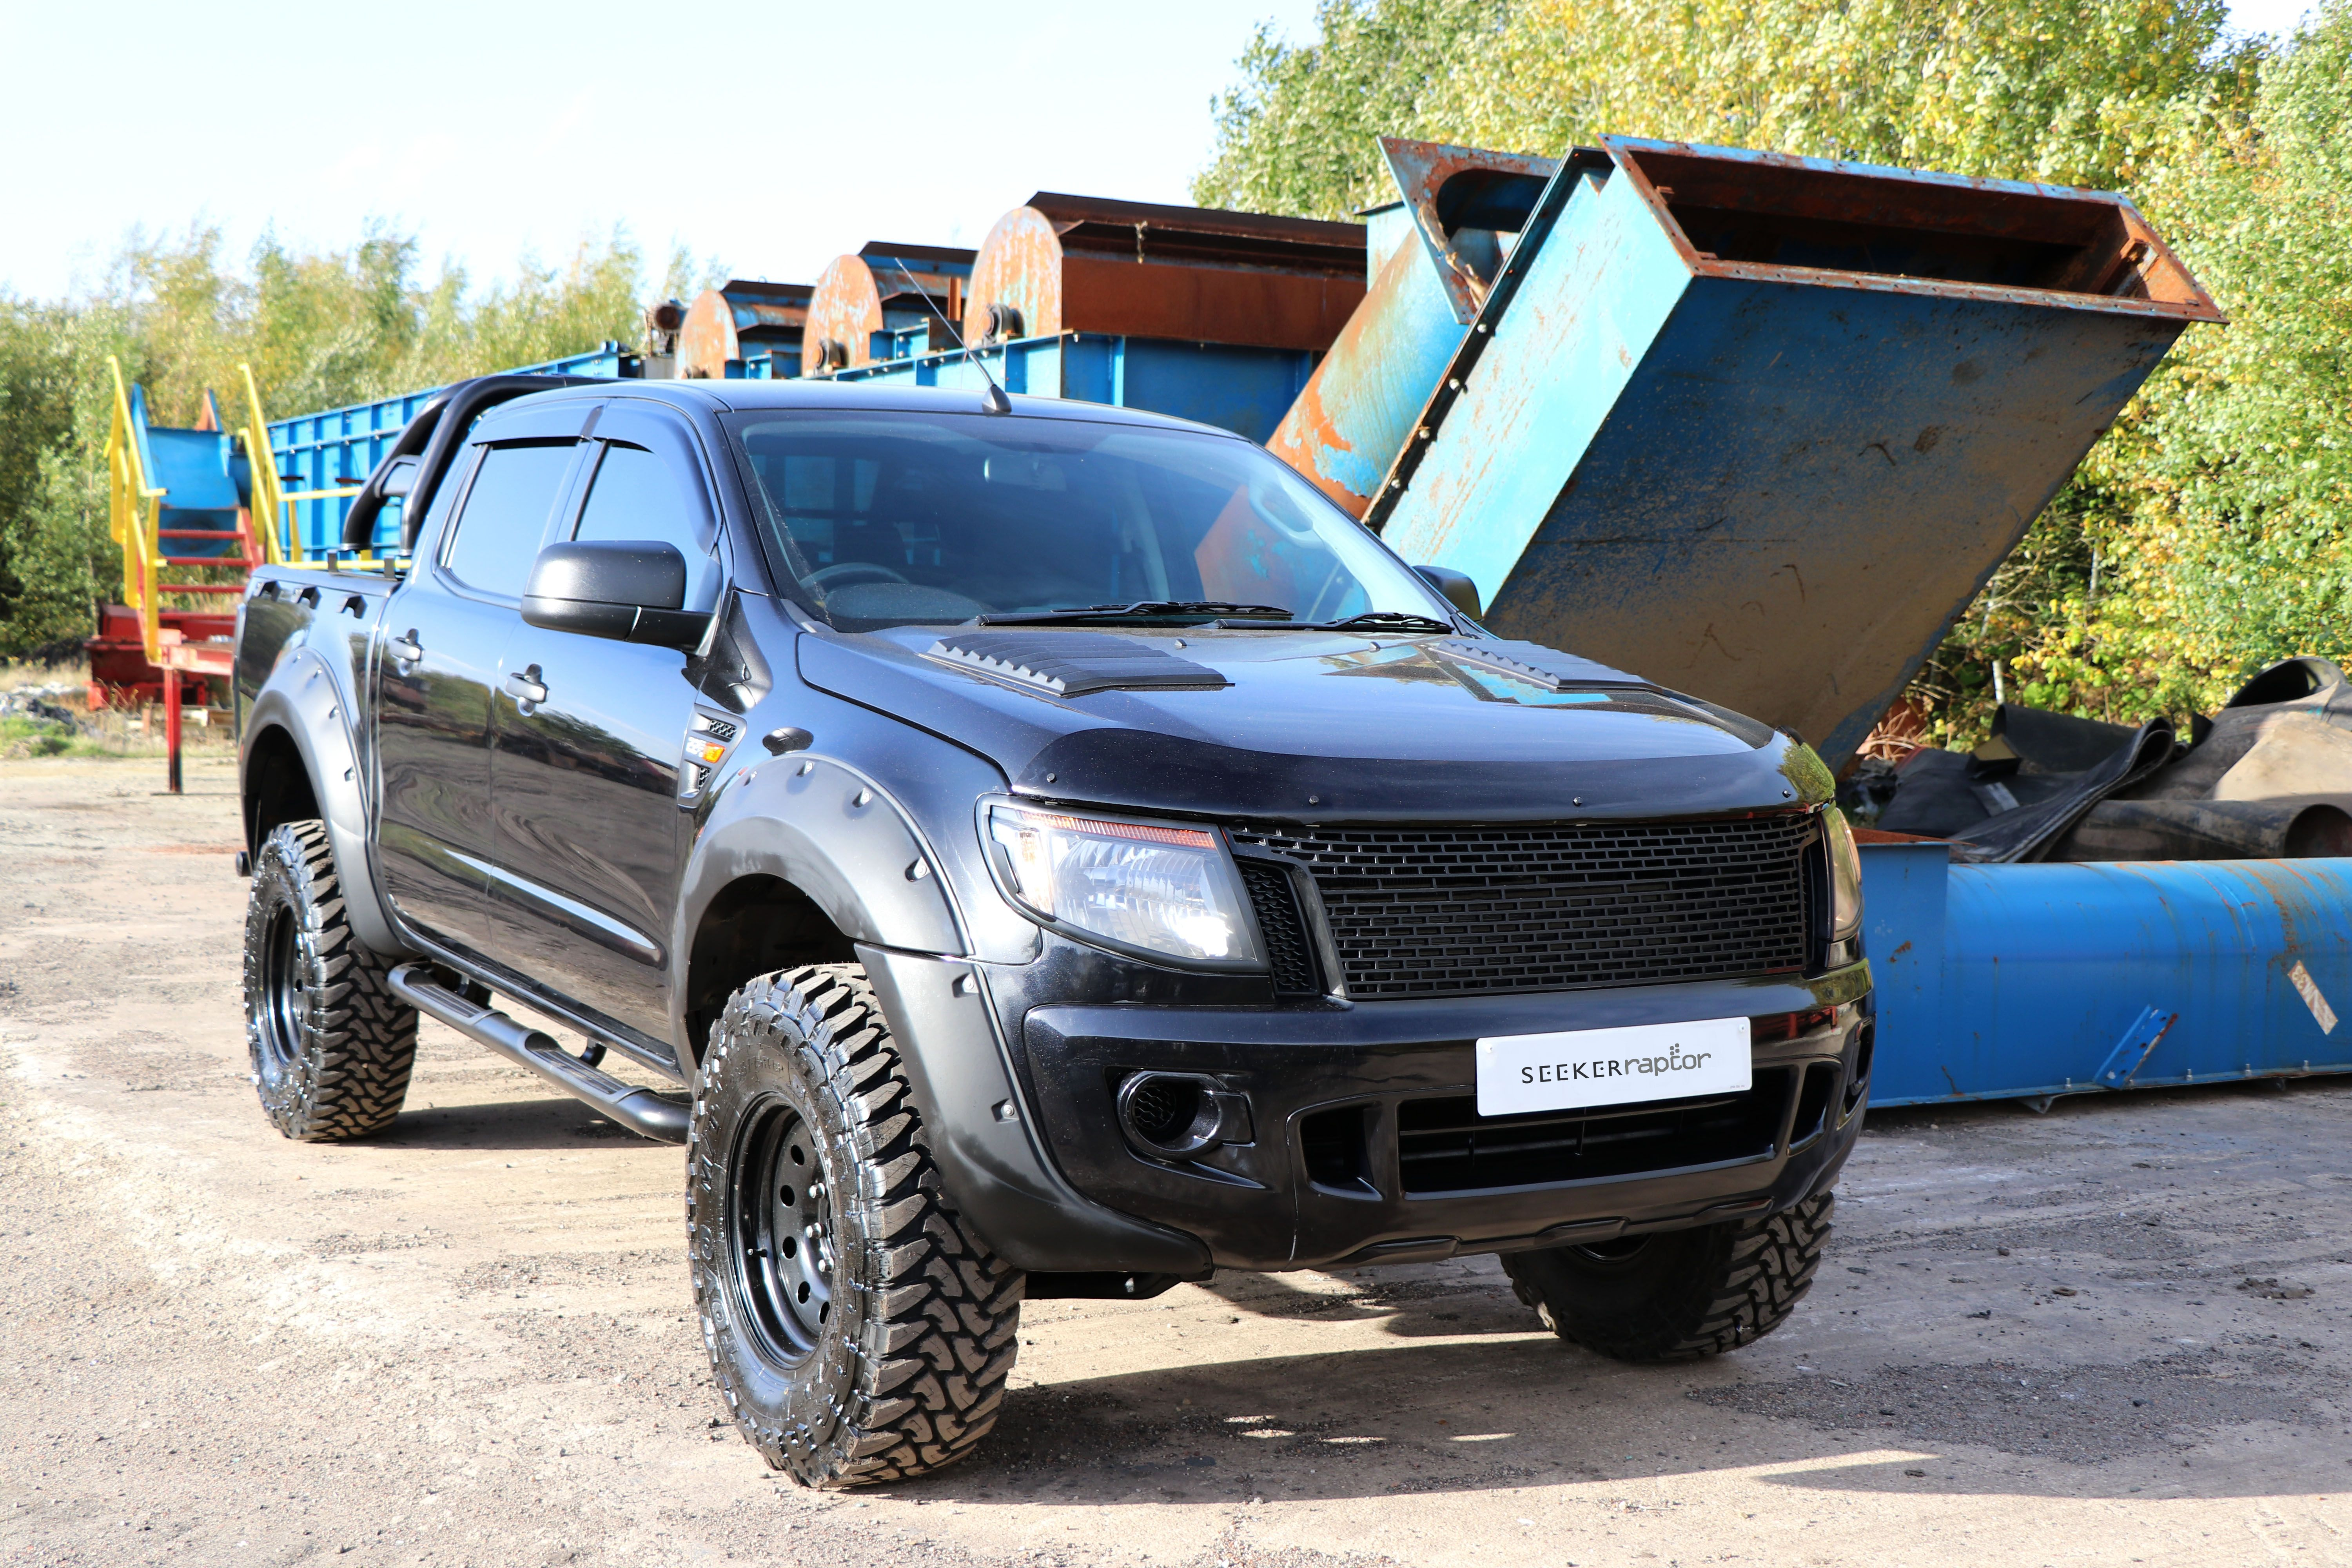 SEEKER Raptor All Black Edition - a conversion for the Ford Ranger.